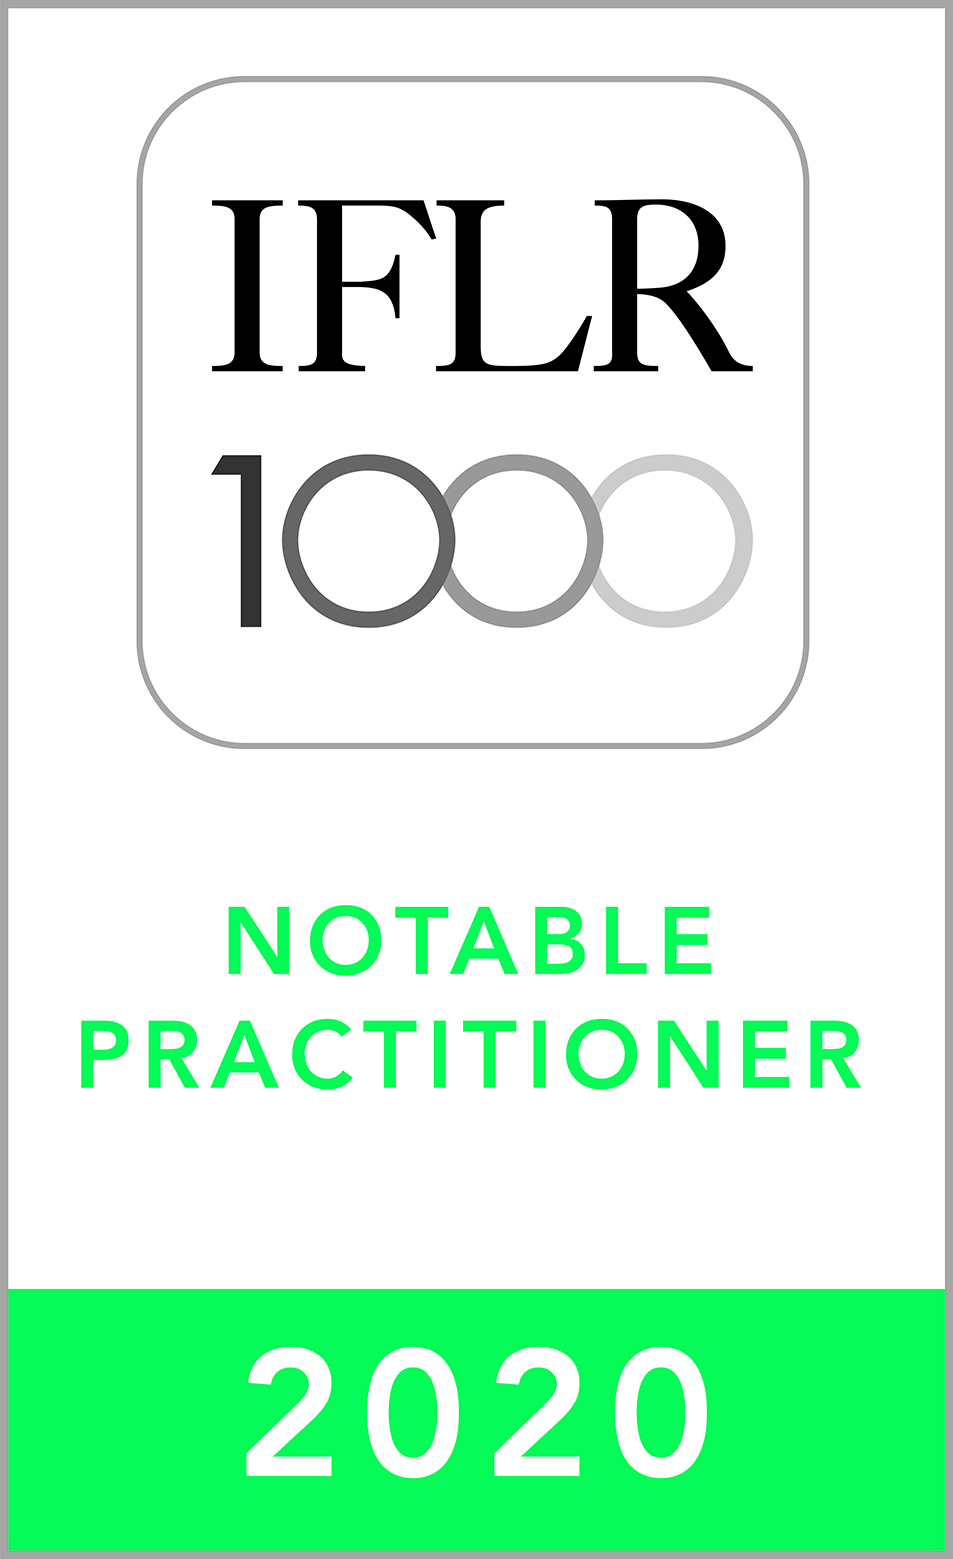 IFLR1000 2020 Notable Practitioner